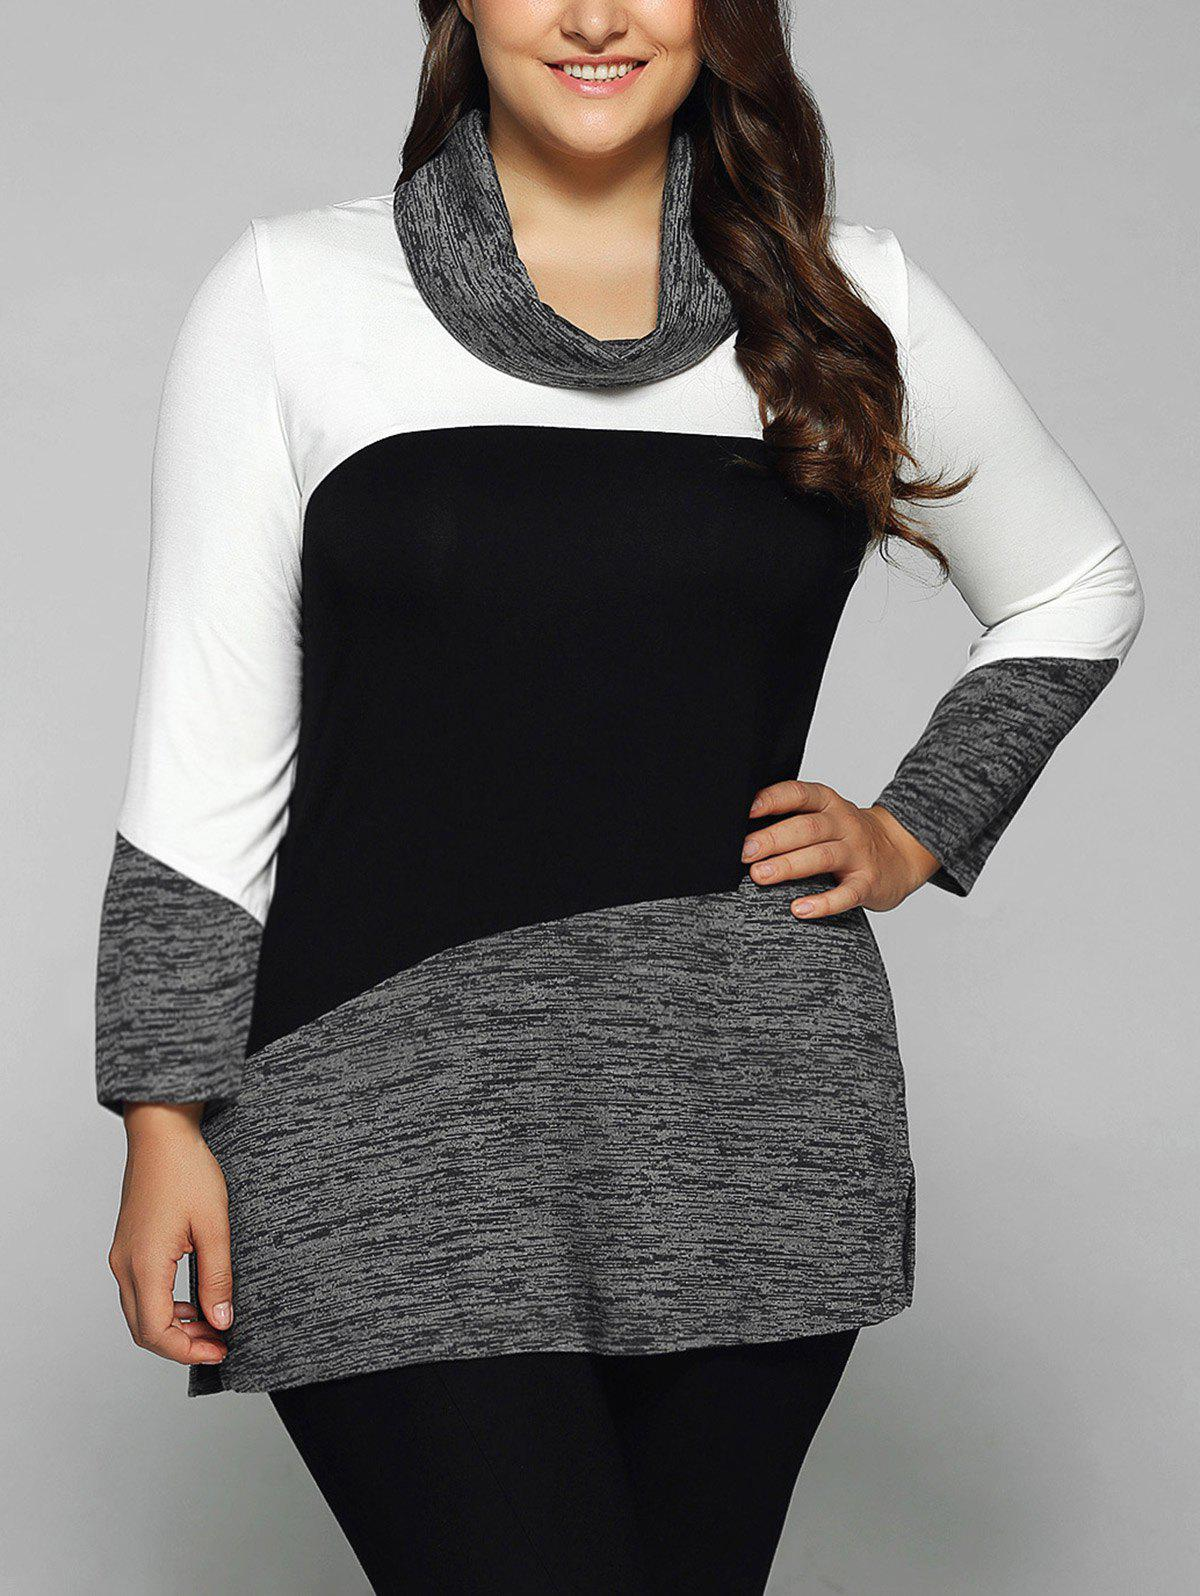 Plus Size Cowl Neck Heathered BlouseWOMEN<br><br>Size: XL; Color: WHITE AND BLACK; Material: Cotton Blends,Spandex; Shirt Length: Long; Sleeve Length: Full; Collar: Cowl Neck; Style: Casual; Season: Fall,Spring,Summer; Pattern Type: Patchwork; Weight: 0.360kg; Package Contents: 1 x Blouse;